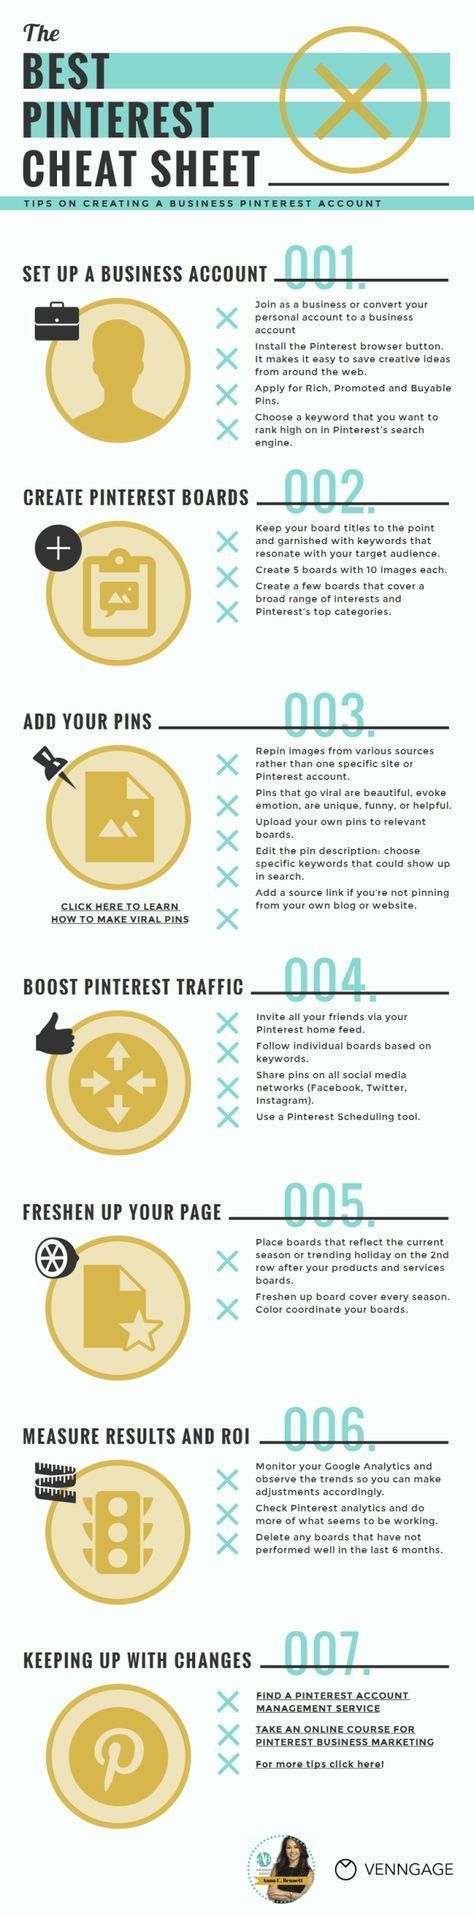 Pinterest for Business | Our brains love visuals and processes images 60,000 times faster than text which is no wonder why infographics receives very high engagement on Pinterest. Here's an infographic that you can easily do for free on /venngage/  Click here to learn more about how to make your pins go viral on Pinterest for your business http://www.whiteglovesocialmedia.com/how-to-create-images-noticed-on-pinterest/ | Tips by Pinterest expert Anna Bennett